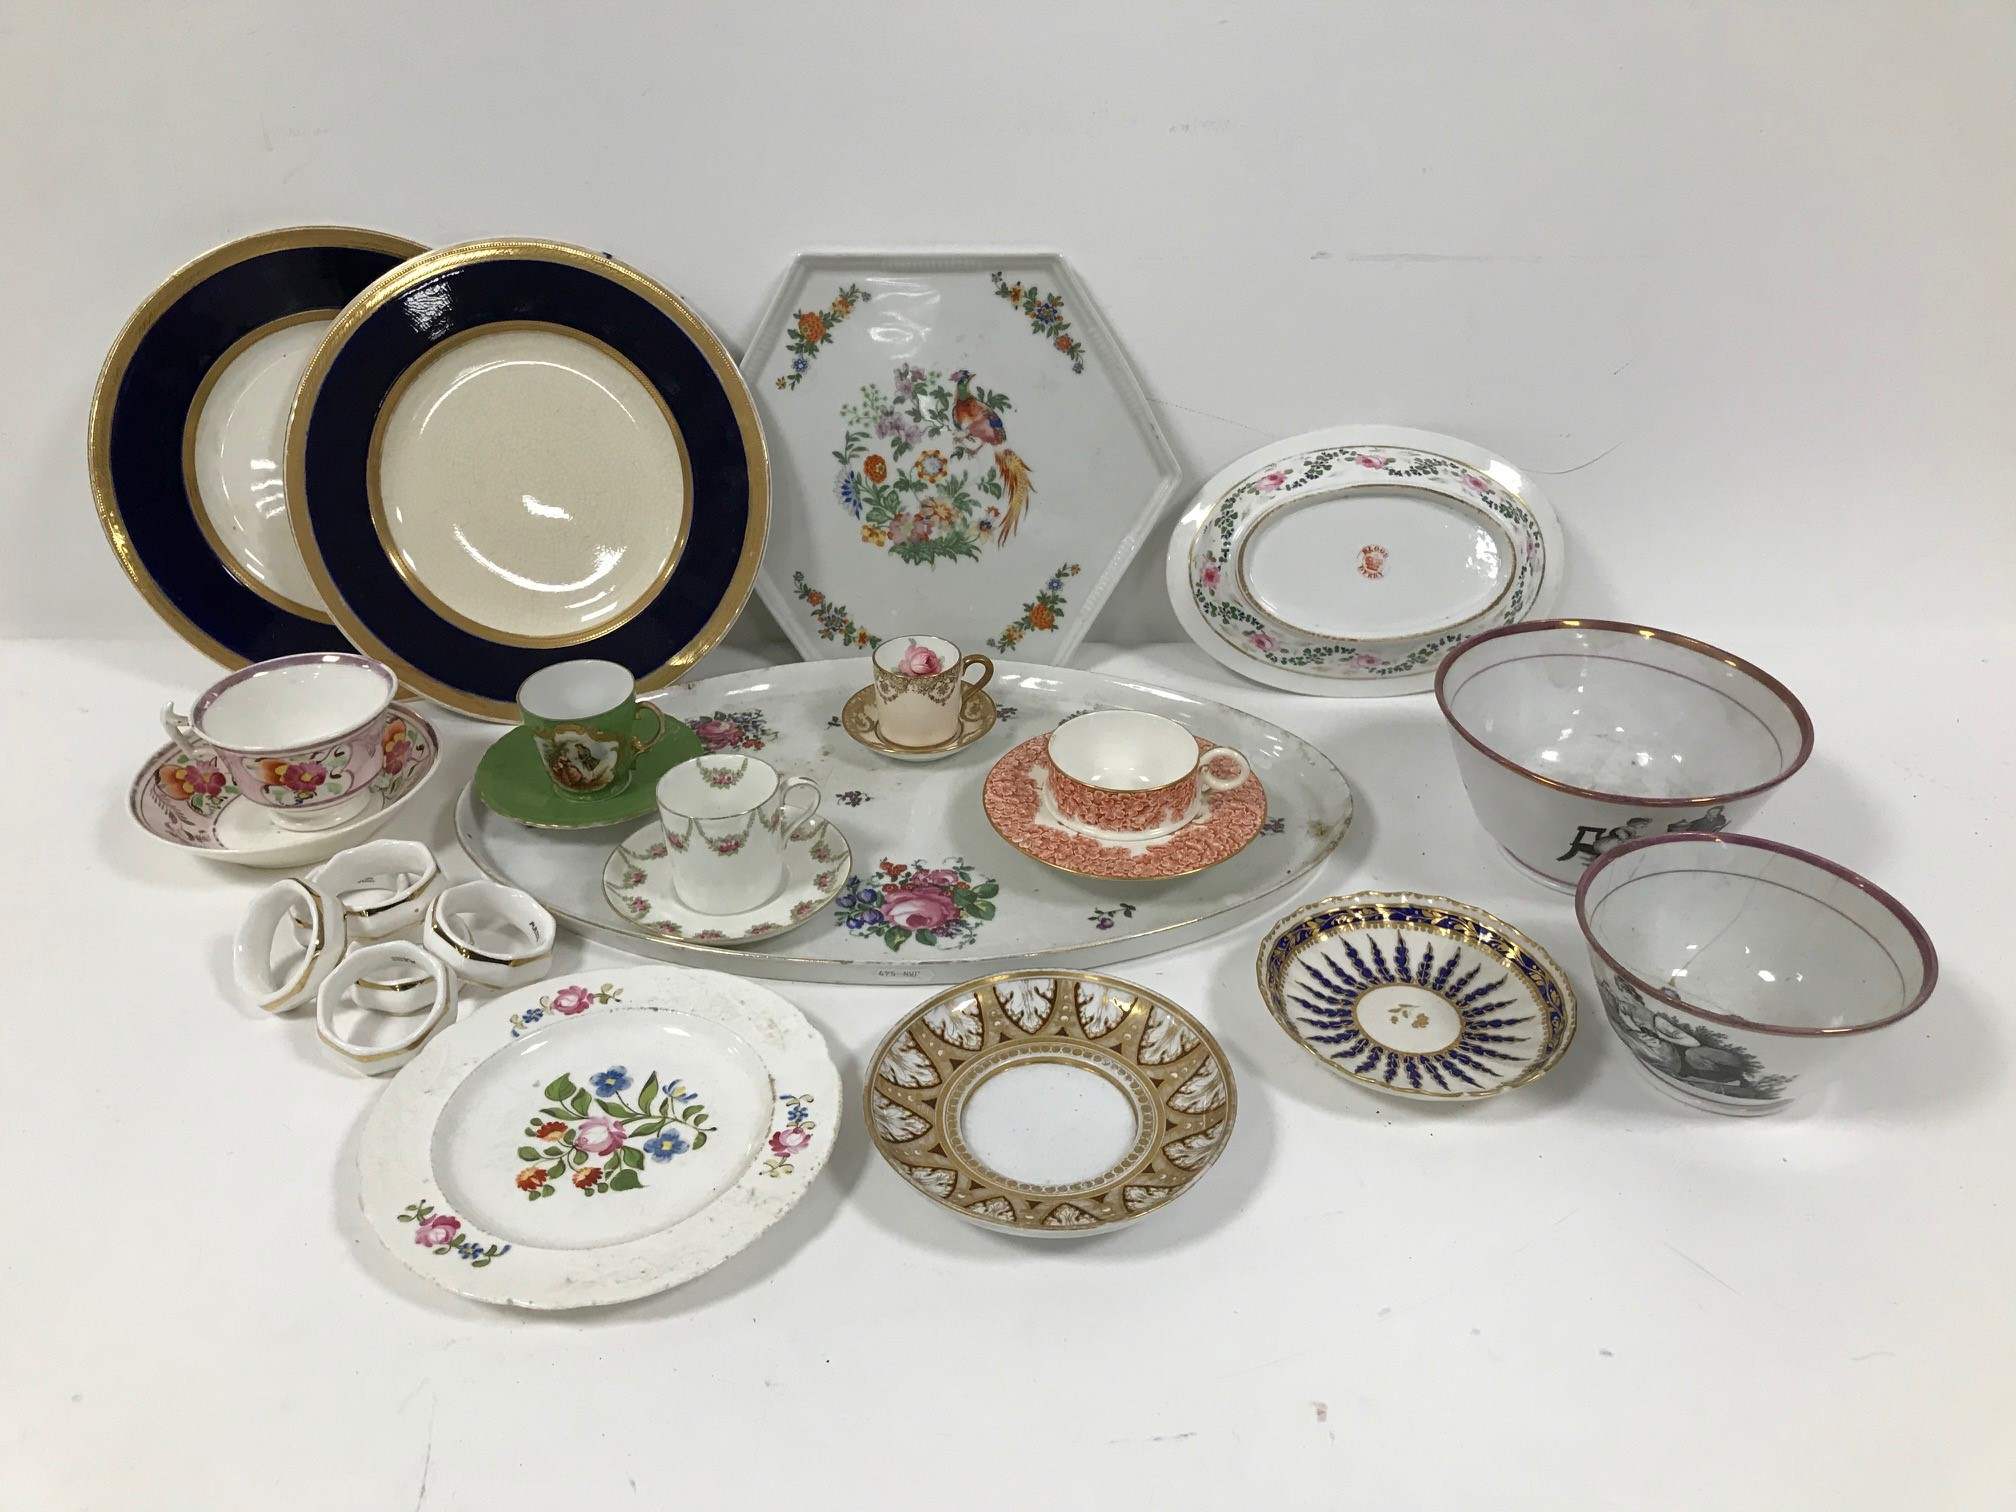 A collection of British ceramics, including a Royal Worcester trombleuse style cup and saucer, a